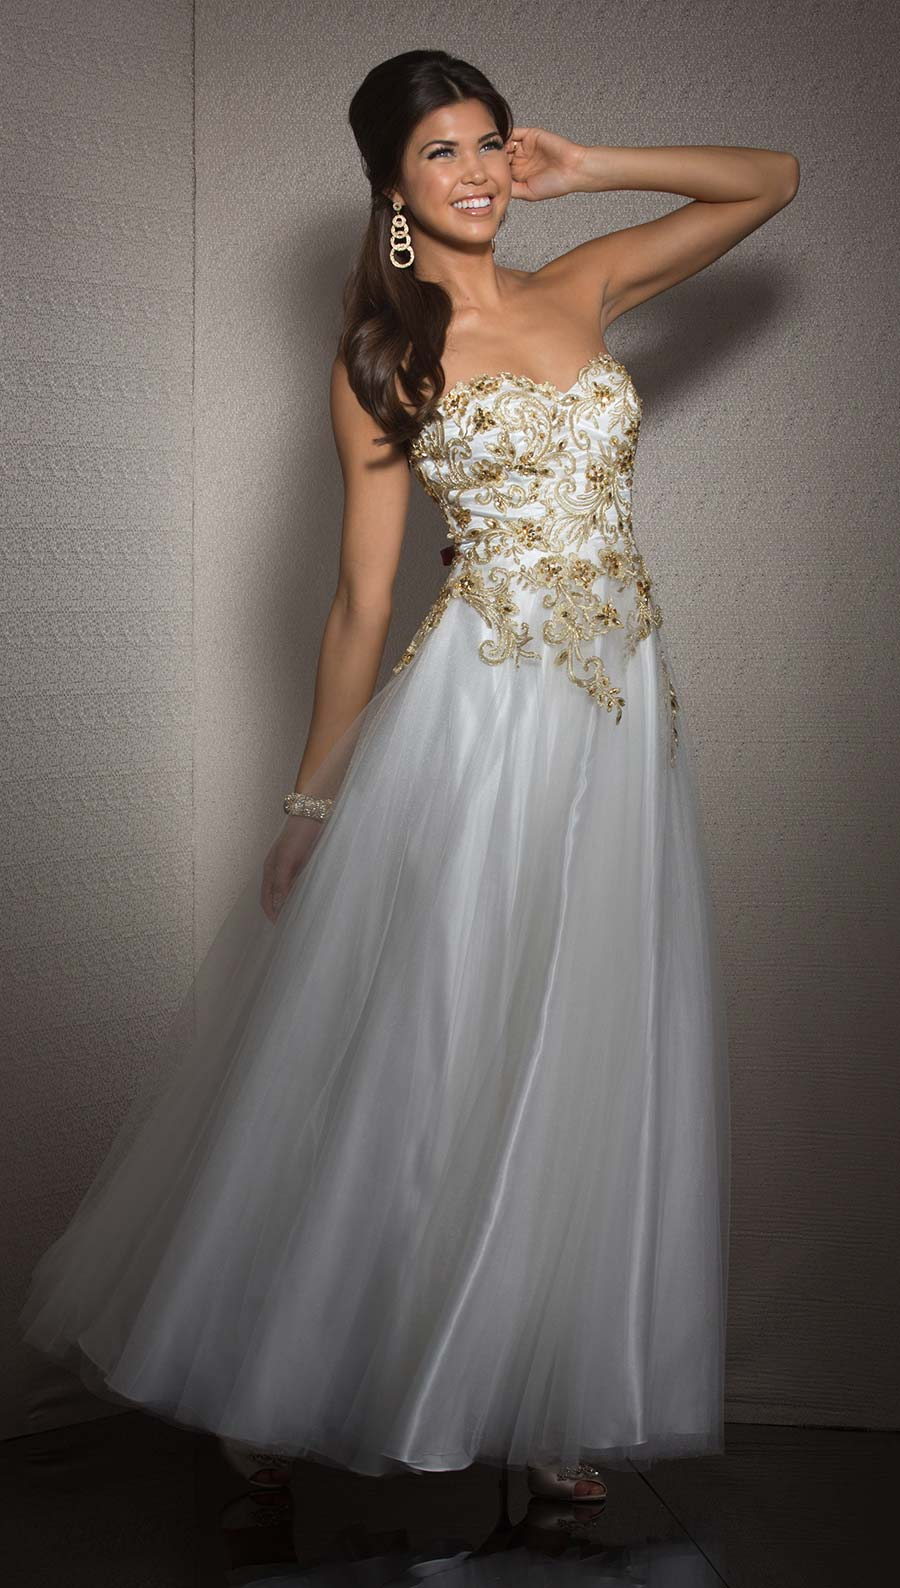 White and Gold Clarisse Ball Gown 2506 | Promgirl.net